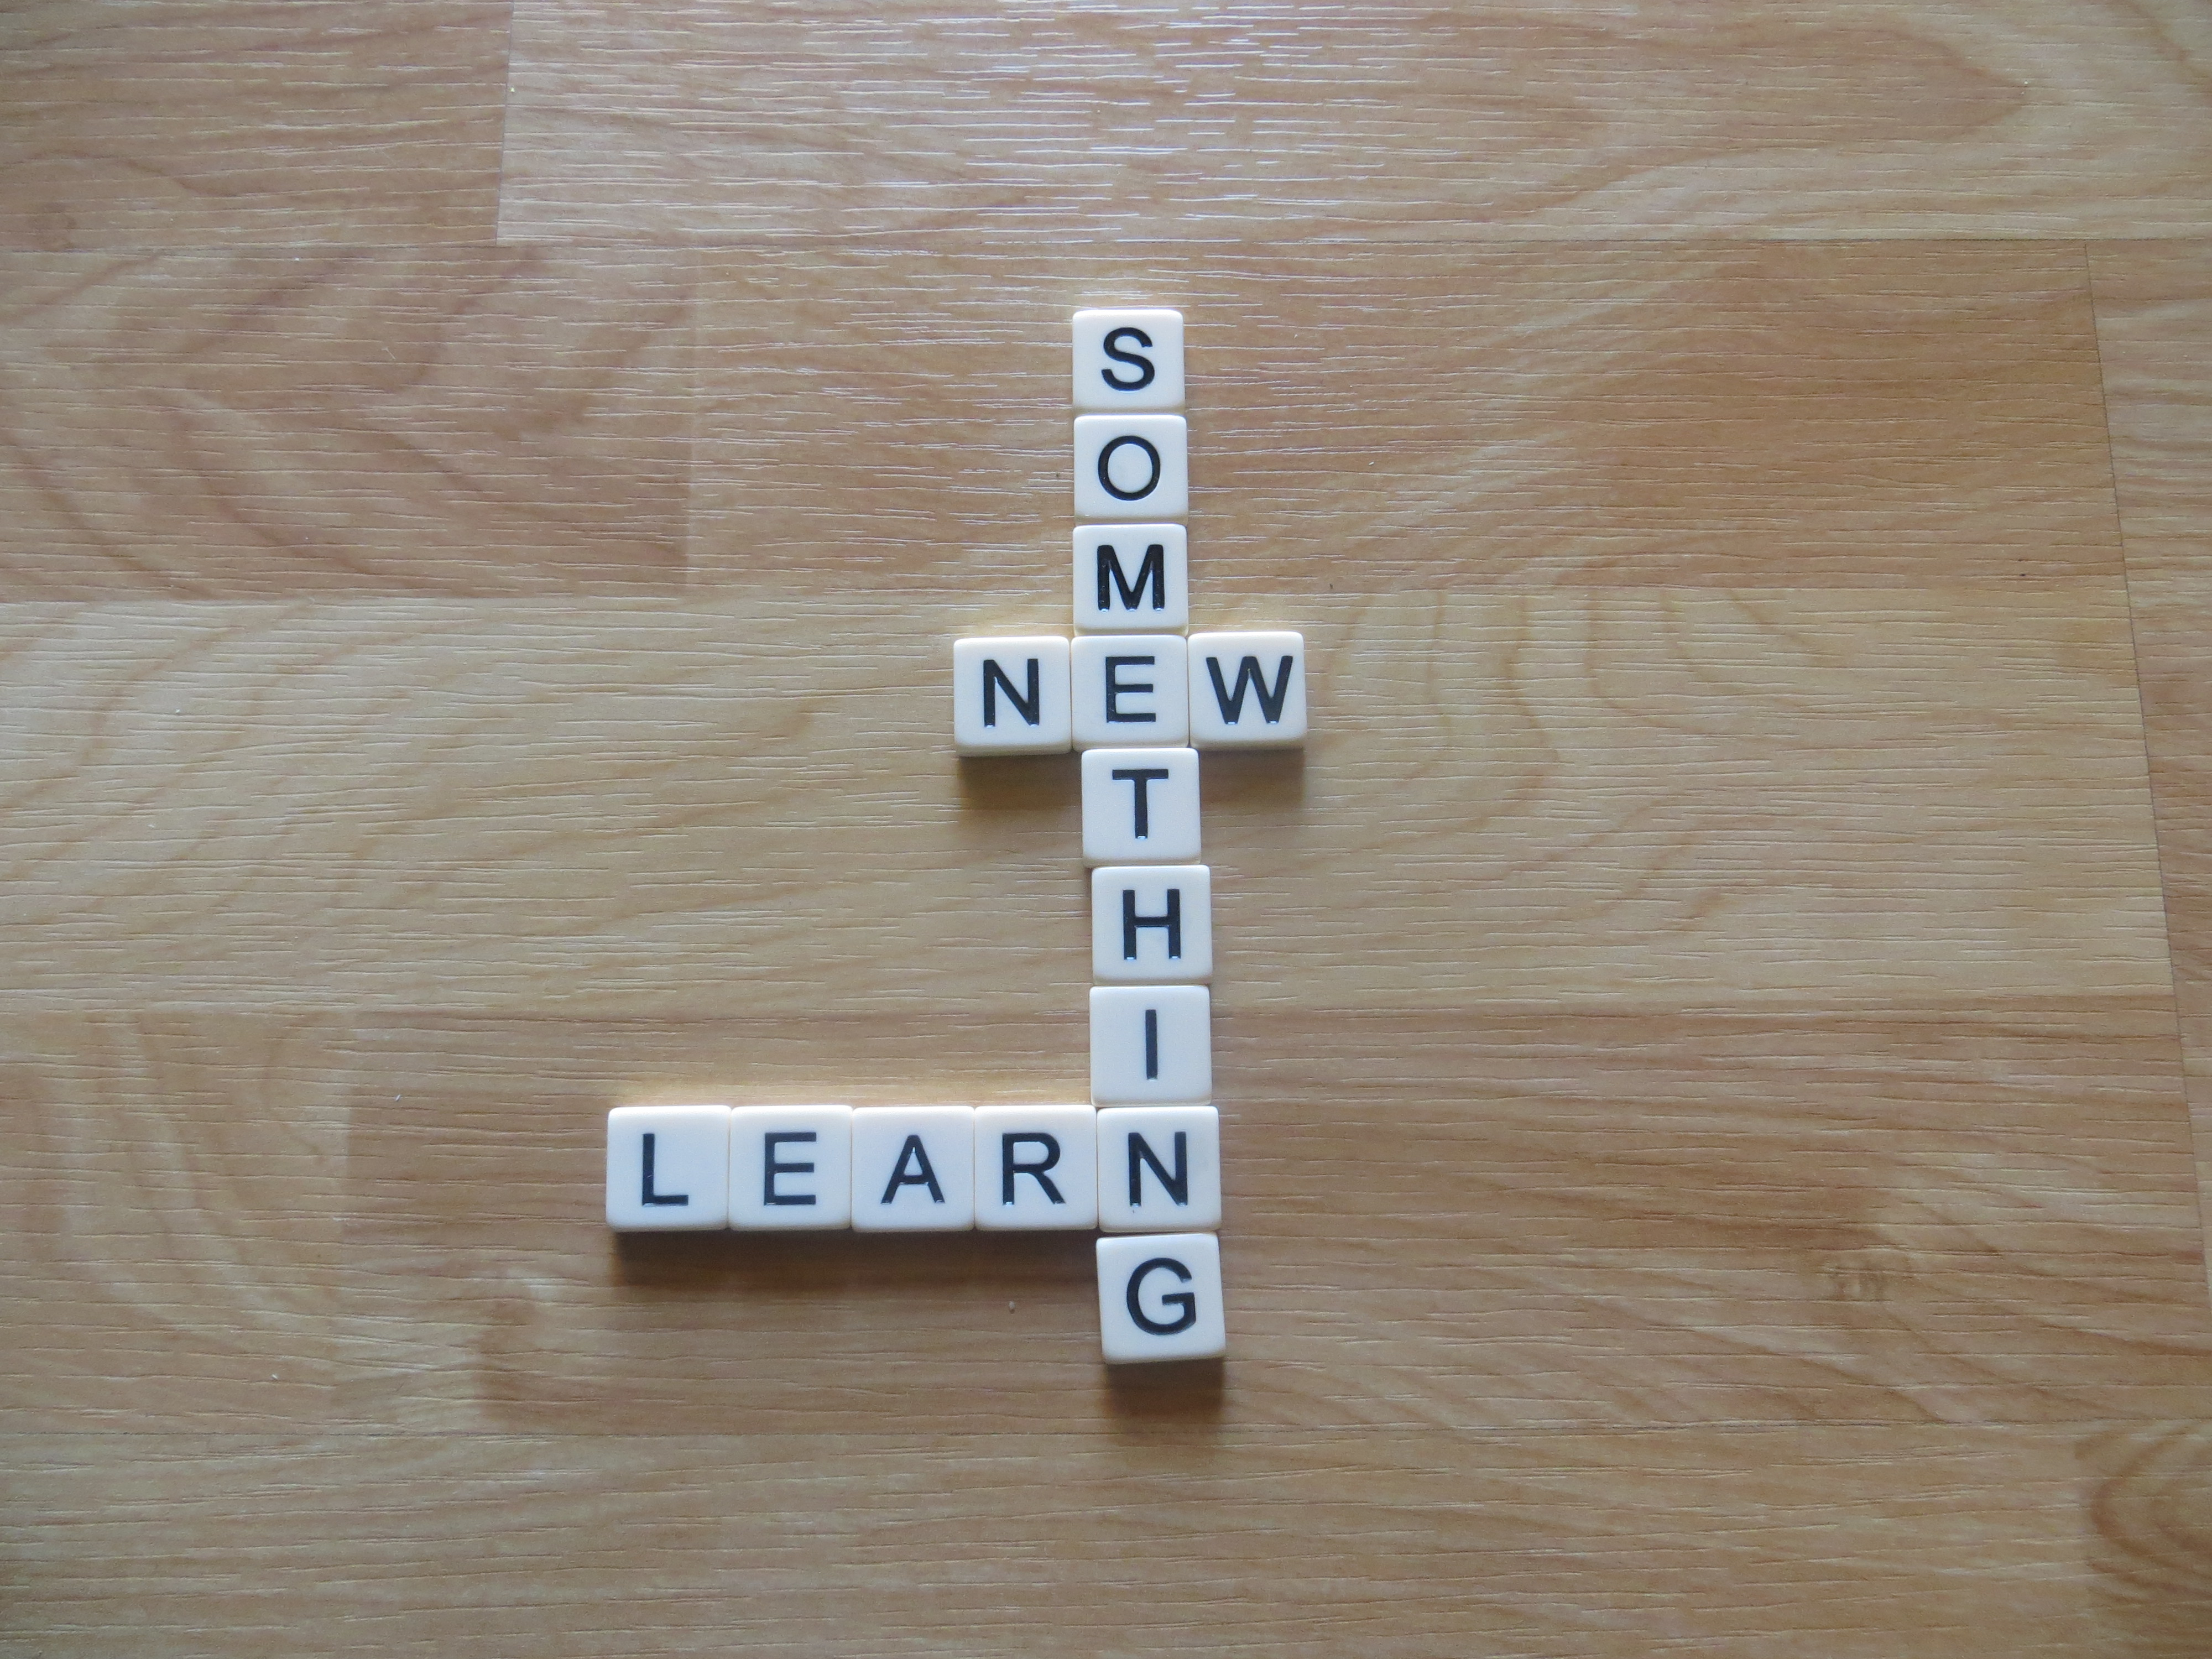 Tuesday Challenge – Learn Something New